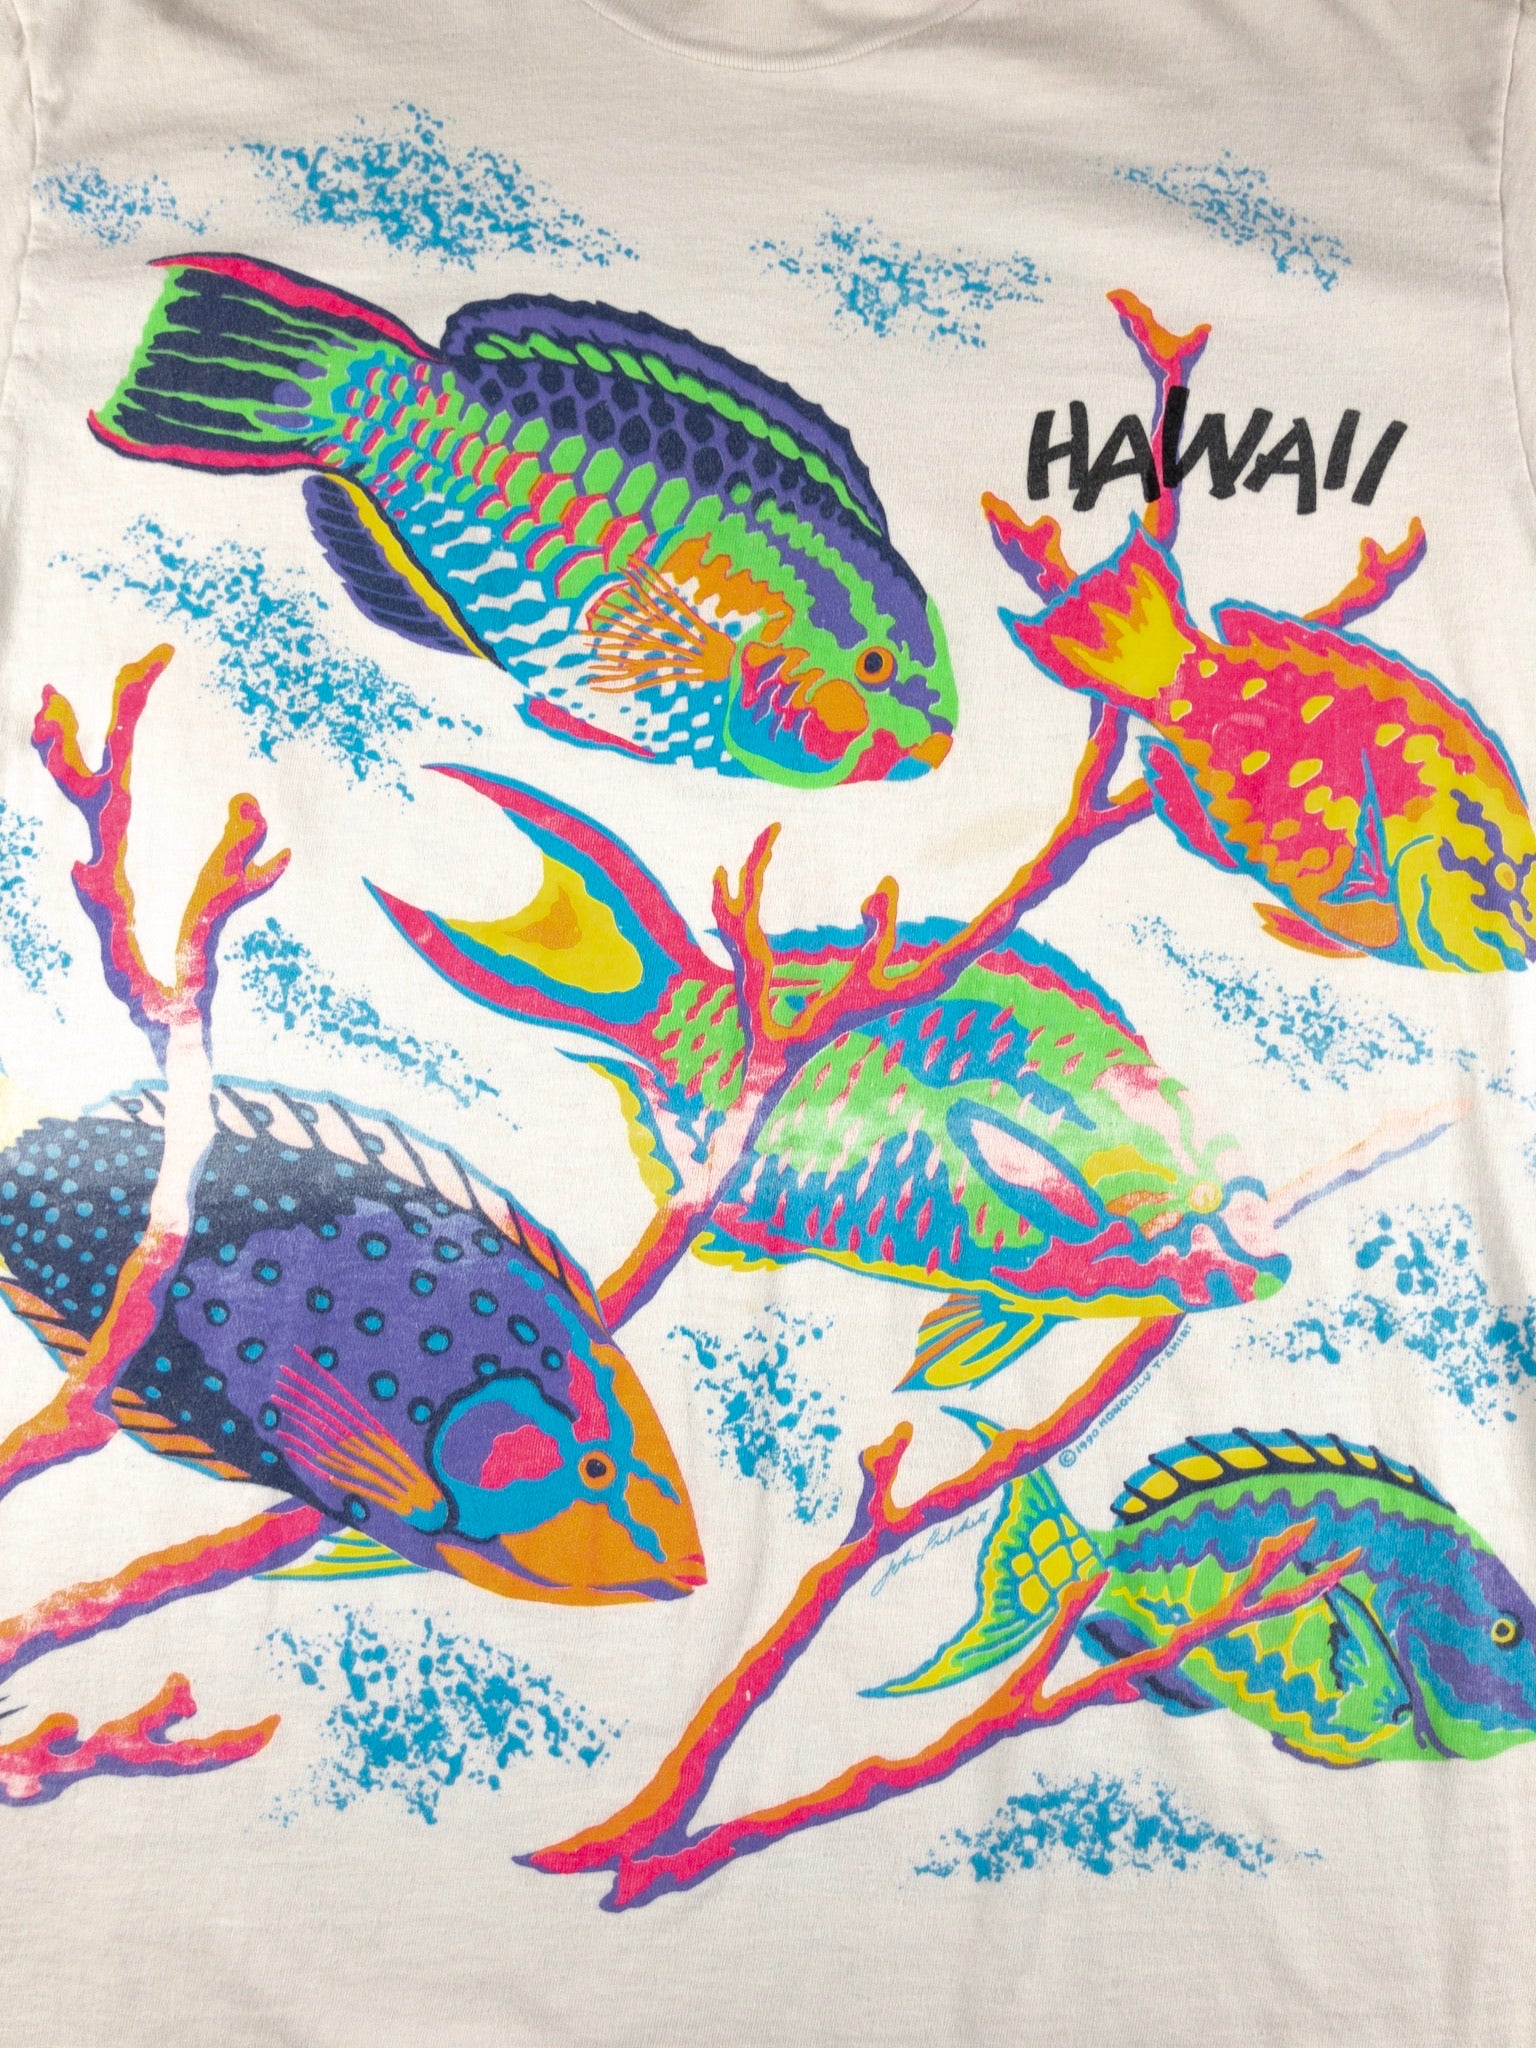 Vintage Hawaii Tropical Fish T-shirt